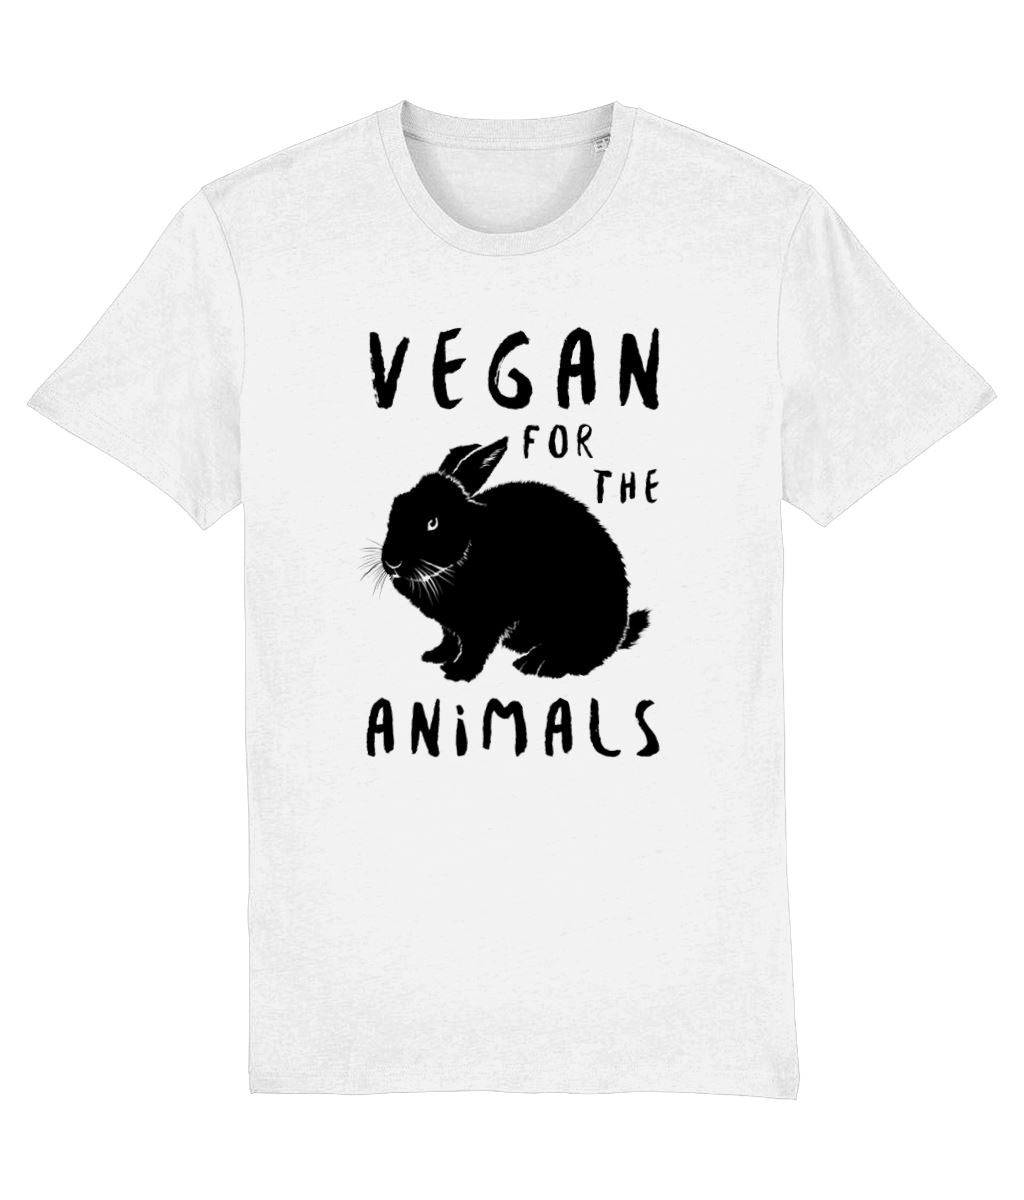 """Vegan for the Animals"" Ethical T-Shirt - 100% Organic Cotton (Unisex) Clothing Vegan Original White XX-Small"